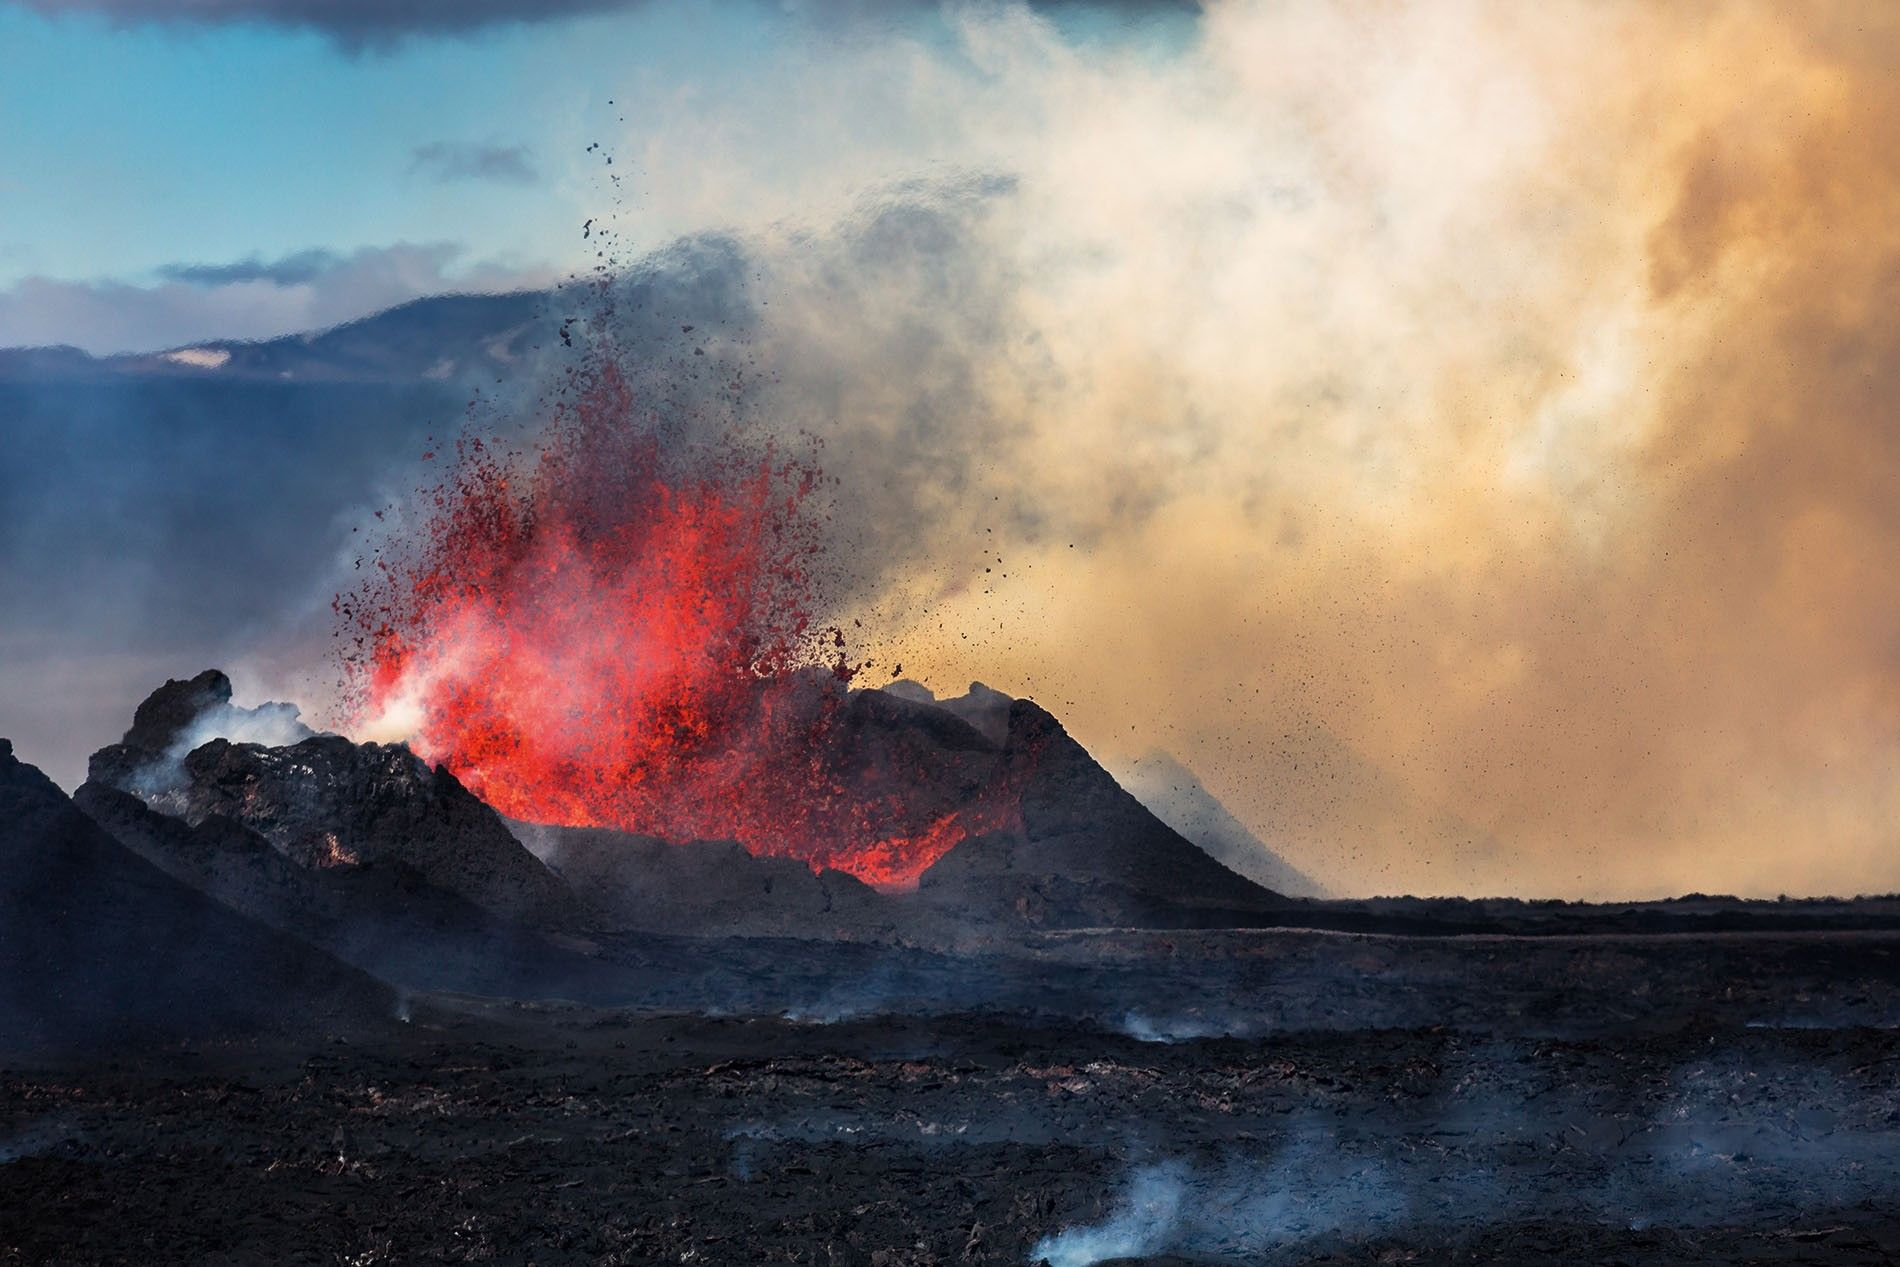 Lava and plumes from the Holuhraun Fissure Eruption by the Bardarbunga Volcano, Iceland